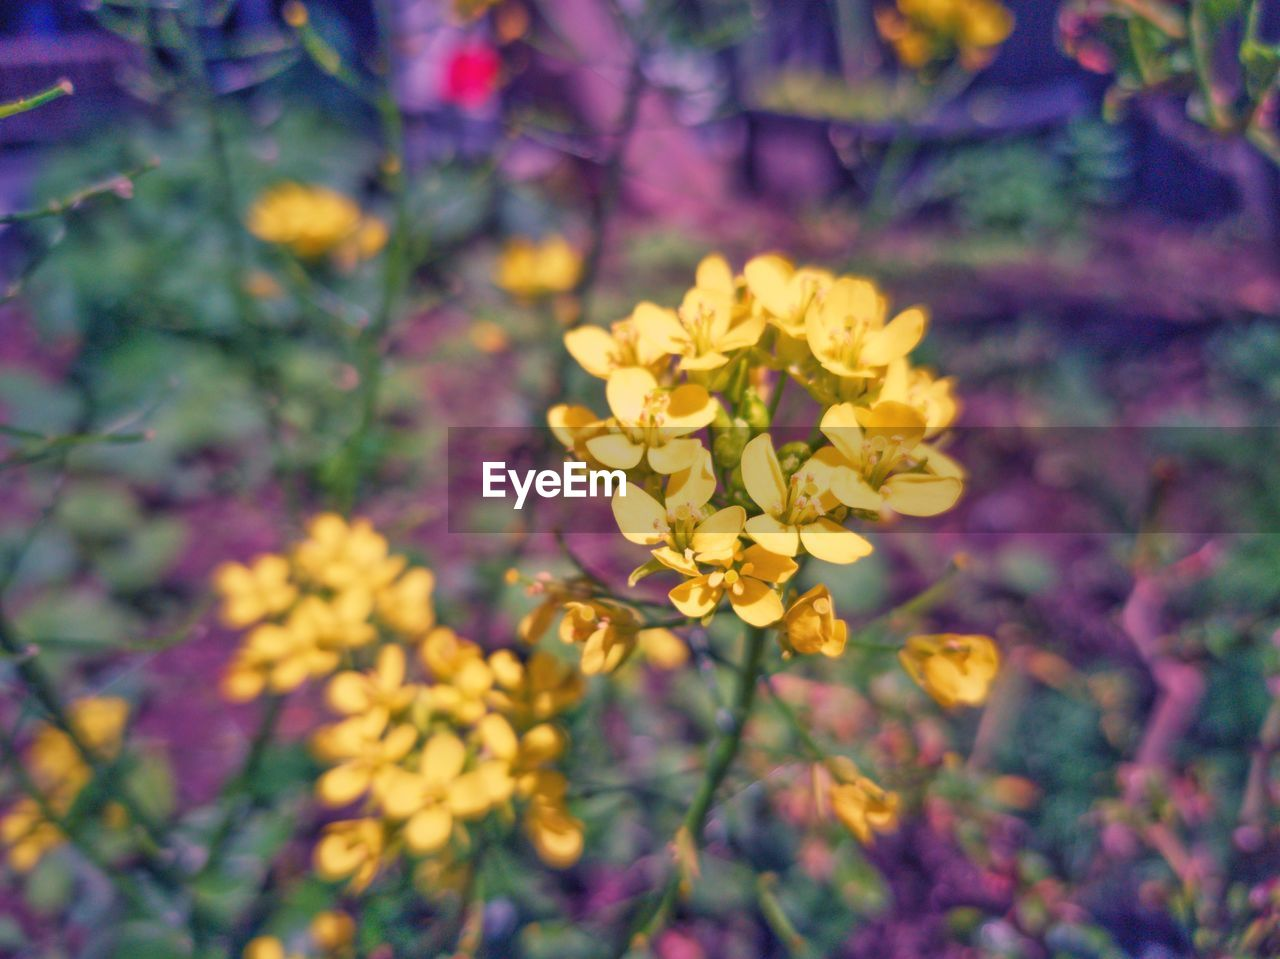 flowering plant, flower, plant, freshness, beauty in nature, yellow, fragility, vulnerability, petal, growth, close-up, inflorescence, no people, flower head, nature, focus on foreground, day, selective focus, outdoors, field